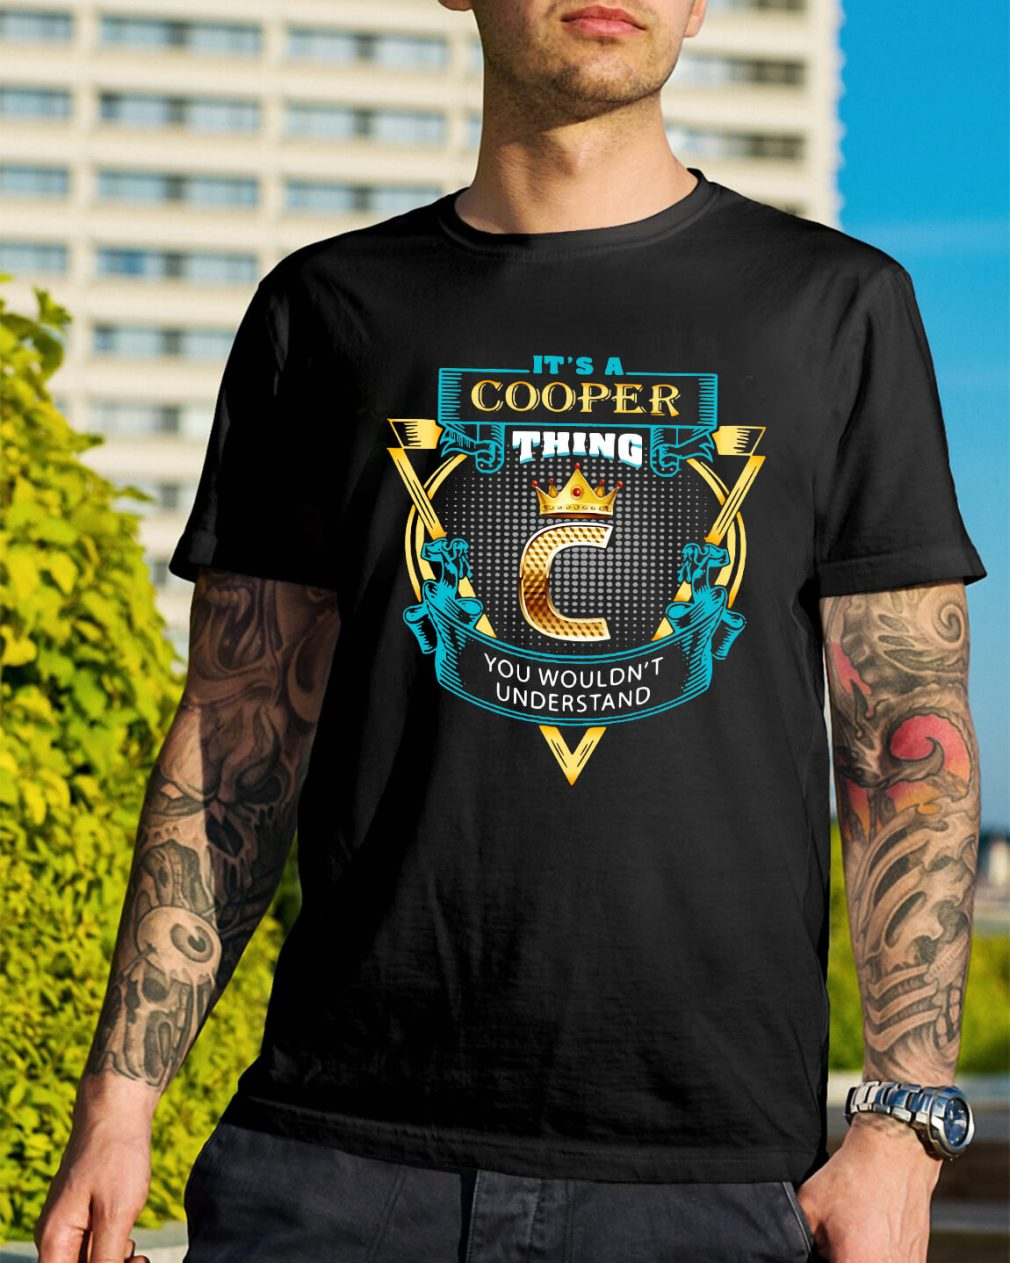 It's a cooper thing you wouldn't understand shirt